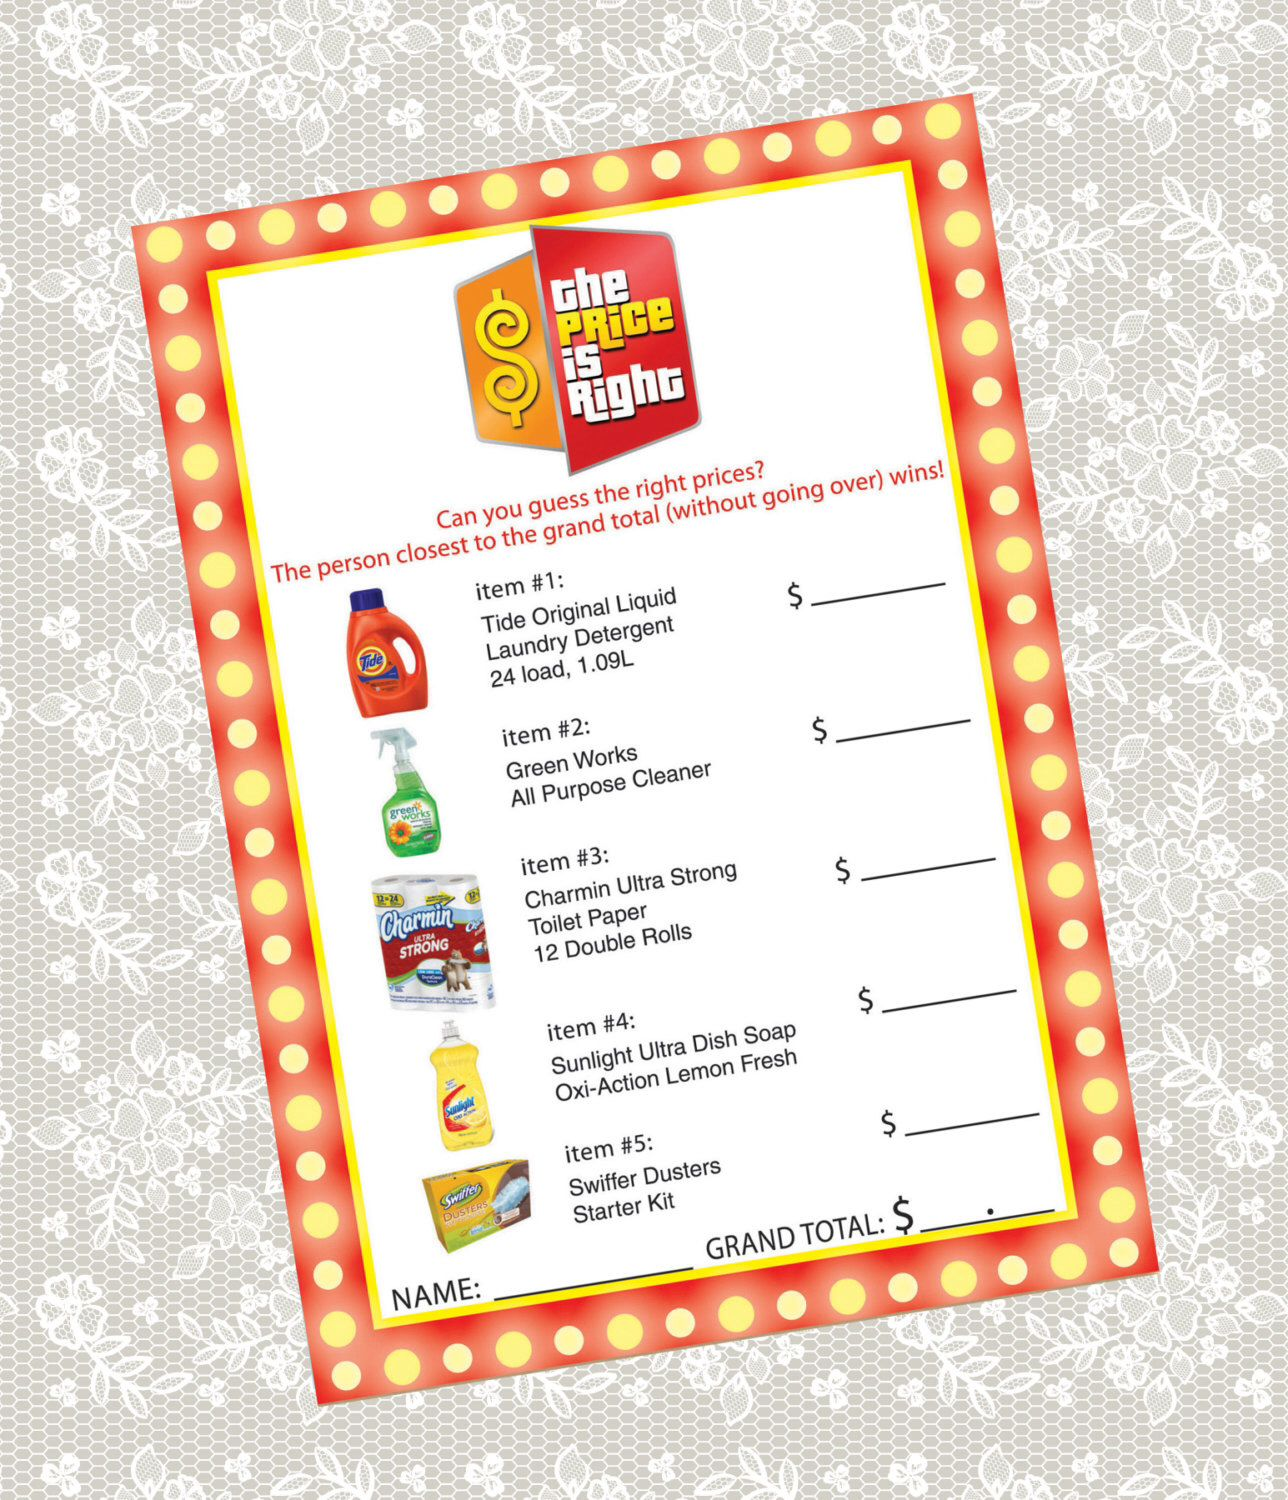 Printable 'The Price is Right' Bridal Shower game card by